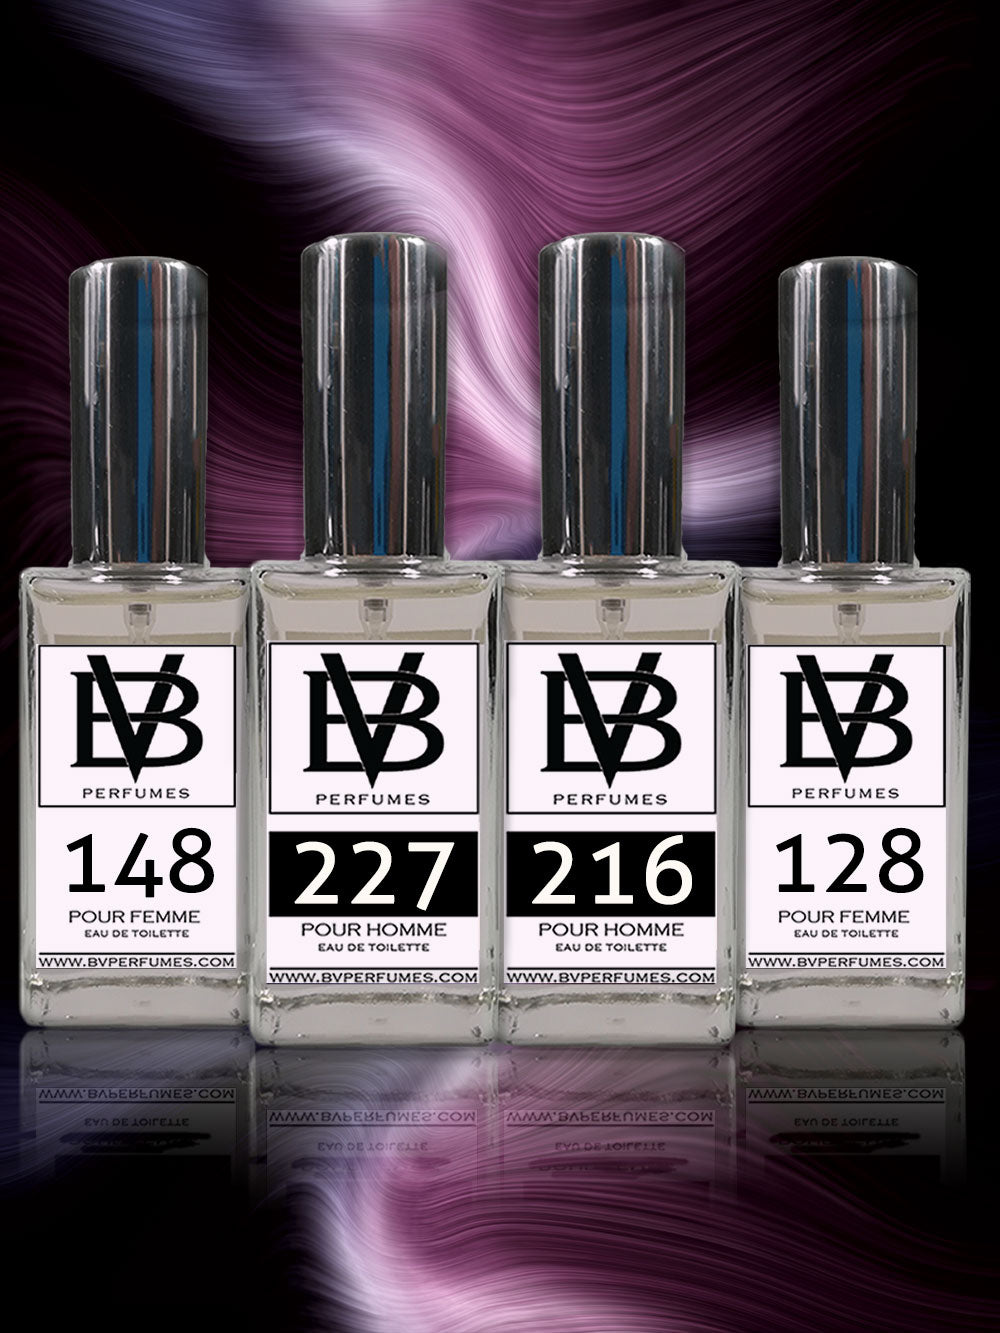 4 x 100ml Perfume Bundle + Free Shipping - BV Perfumes